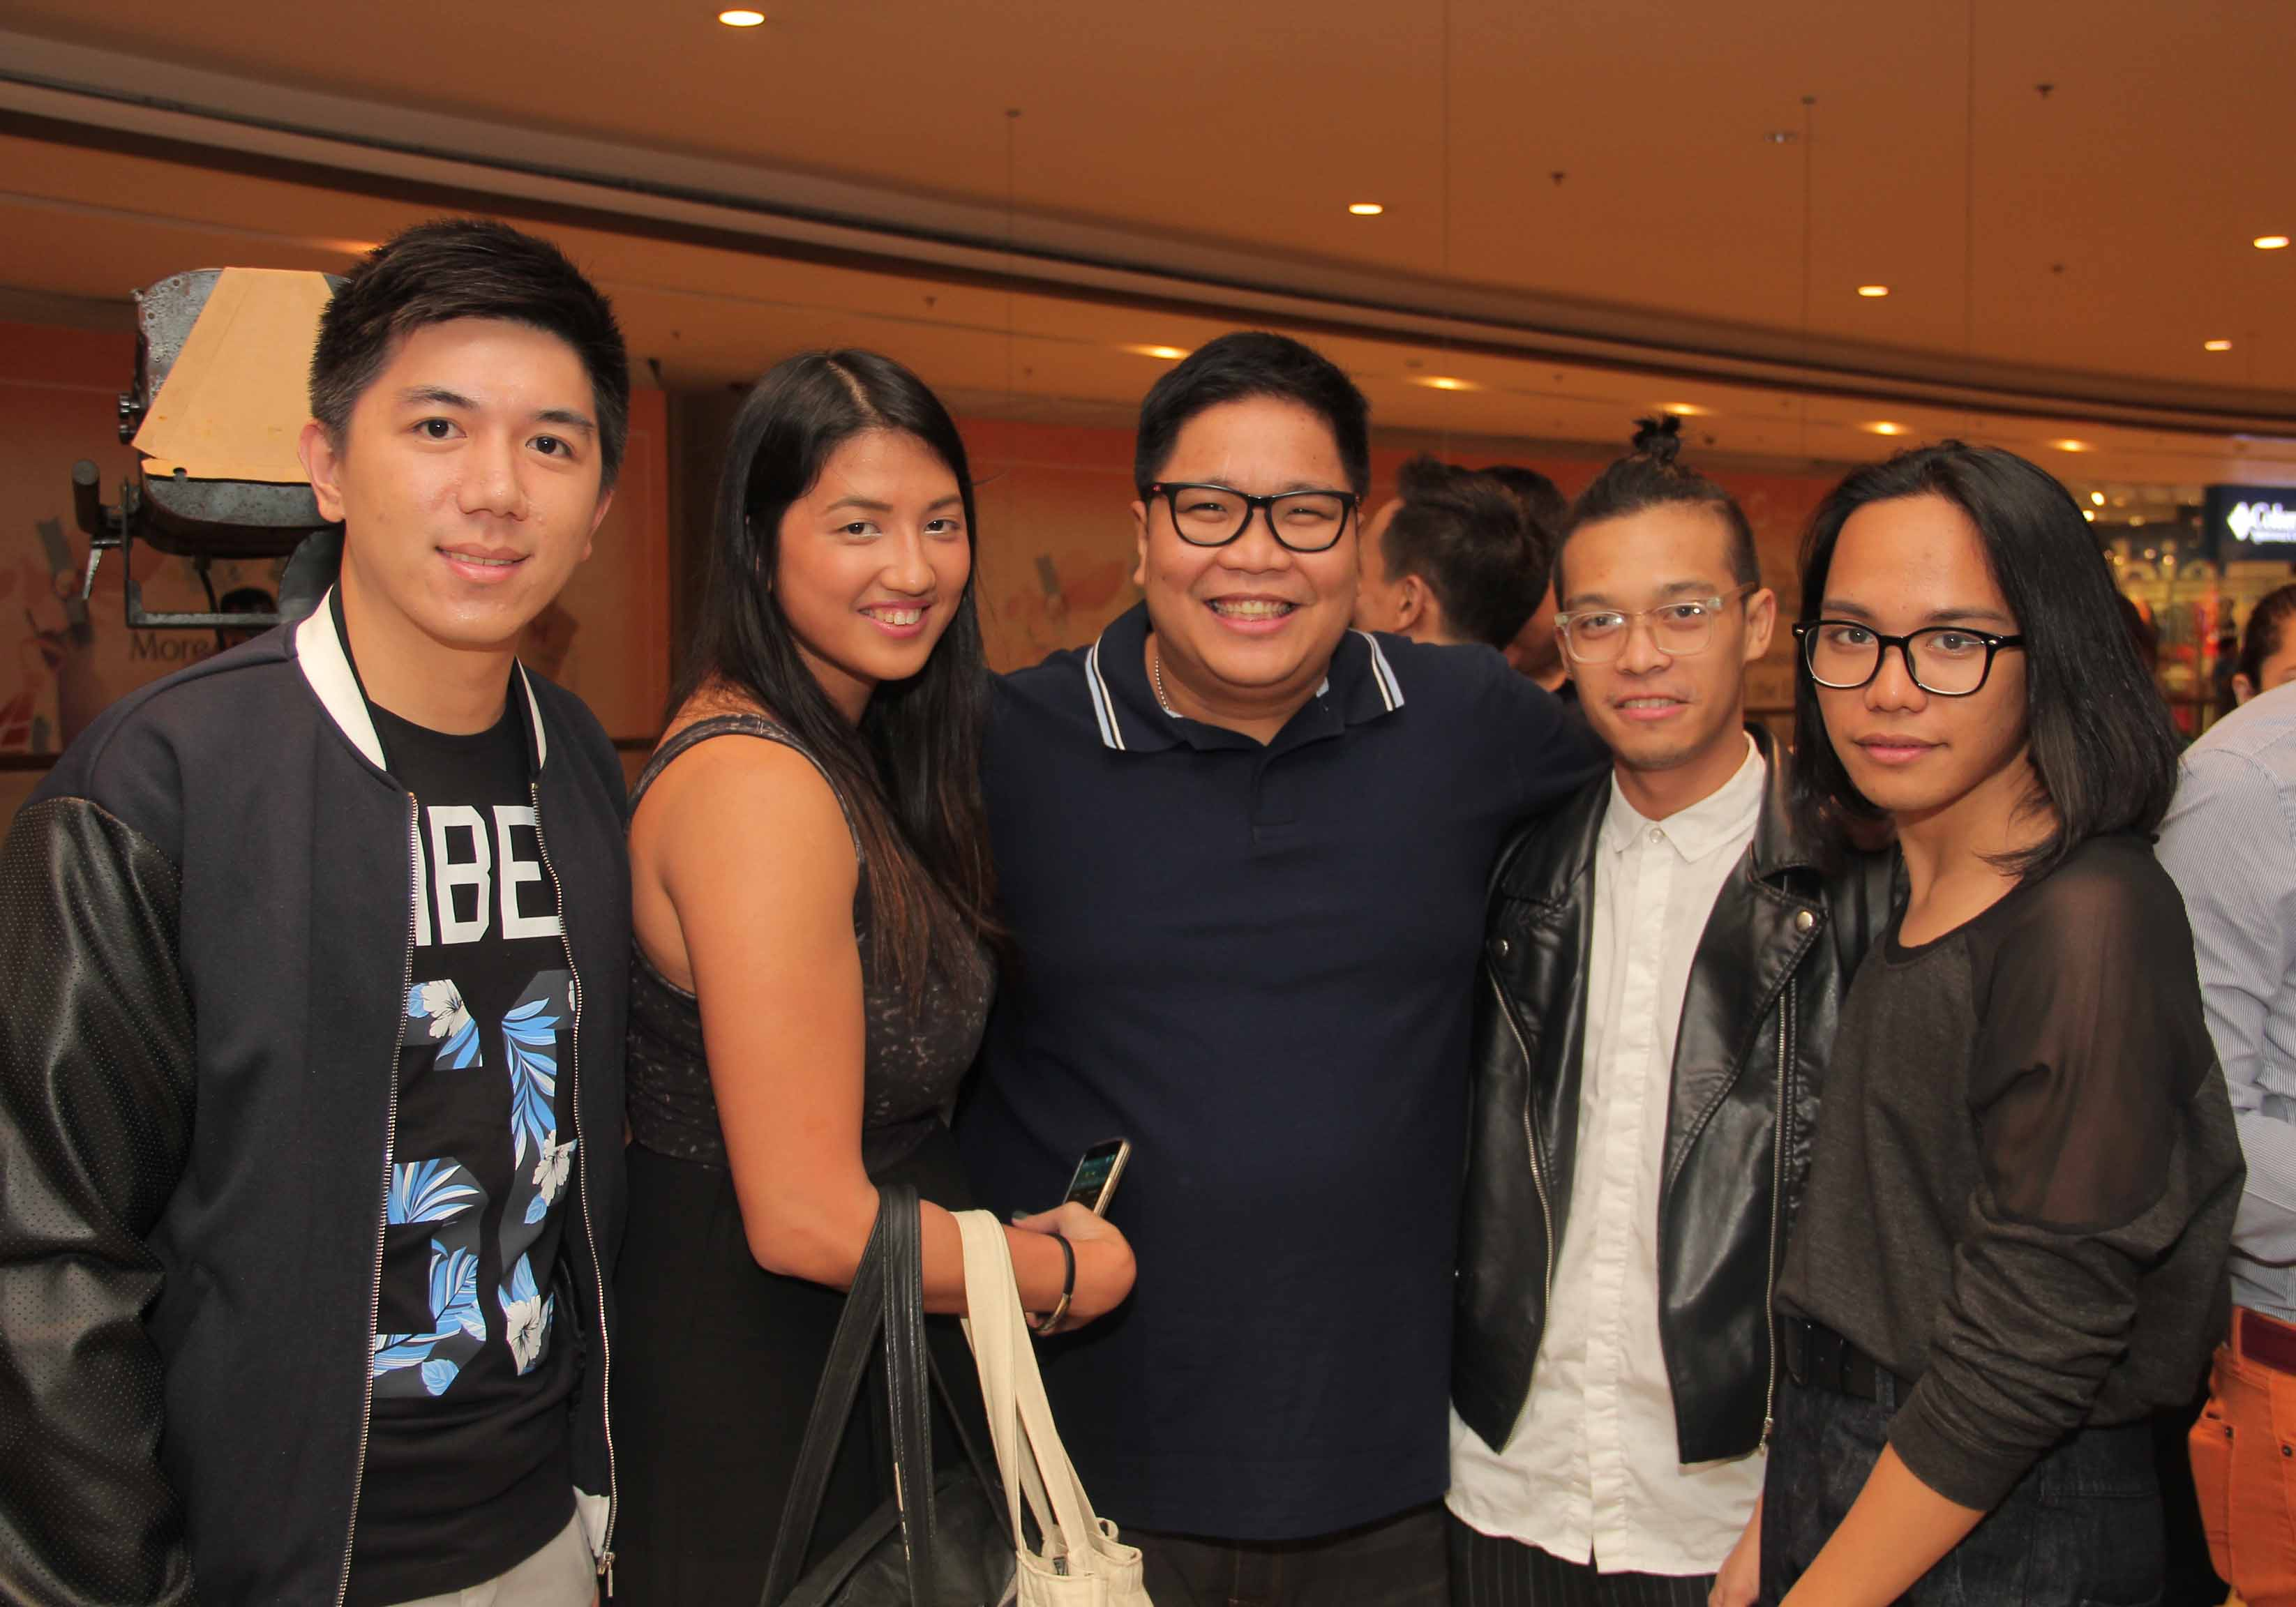 Native's Brand Exec. PJ Chua, Travel Now's Klara Anonuevo, Celebrity Host Jugs Jugueta, Mega's Angelo de Cartagena & Jeff Fronda